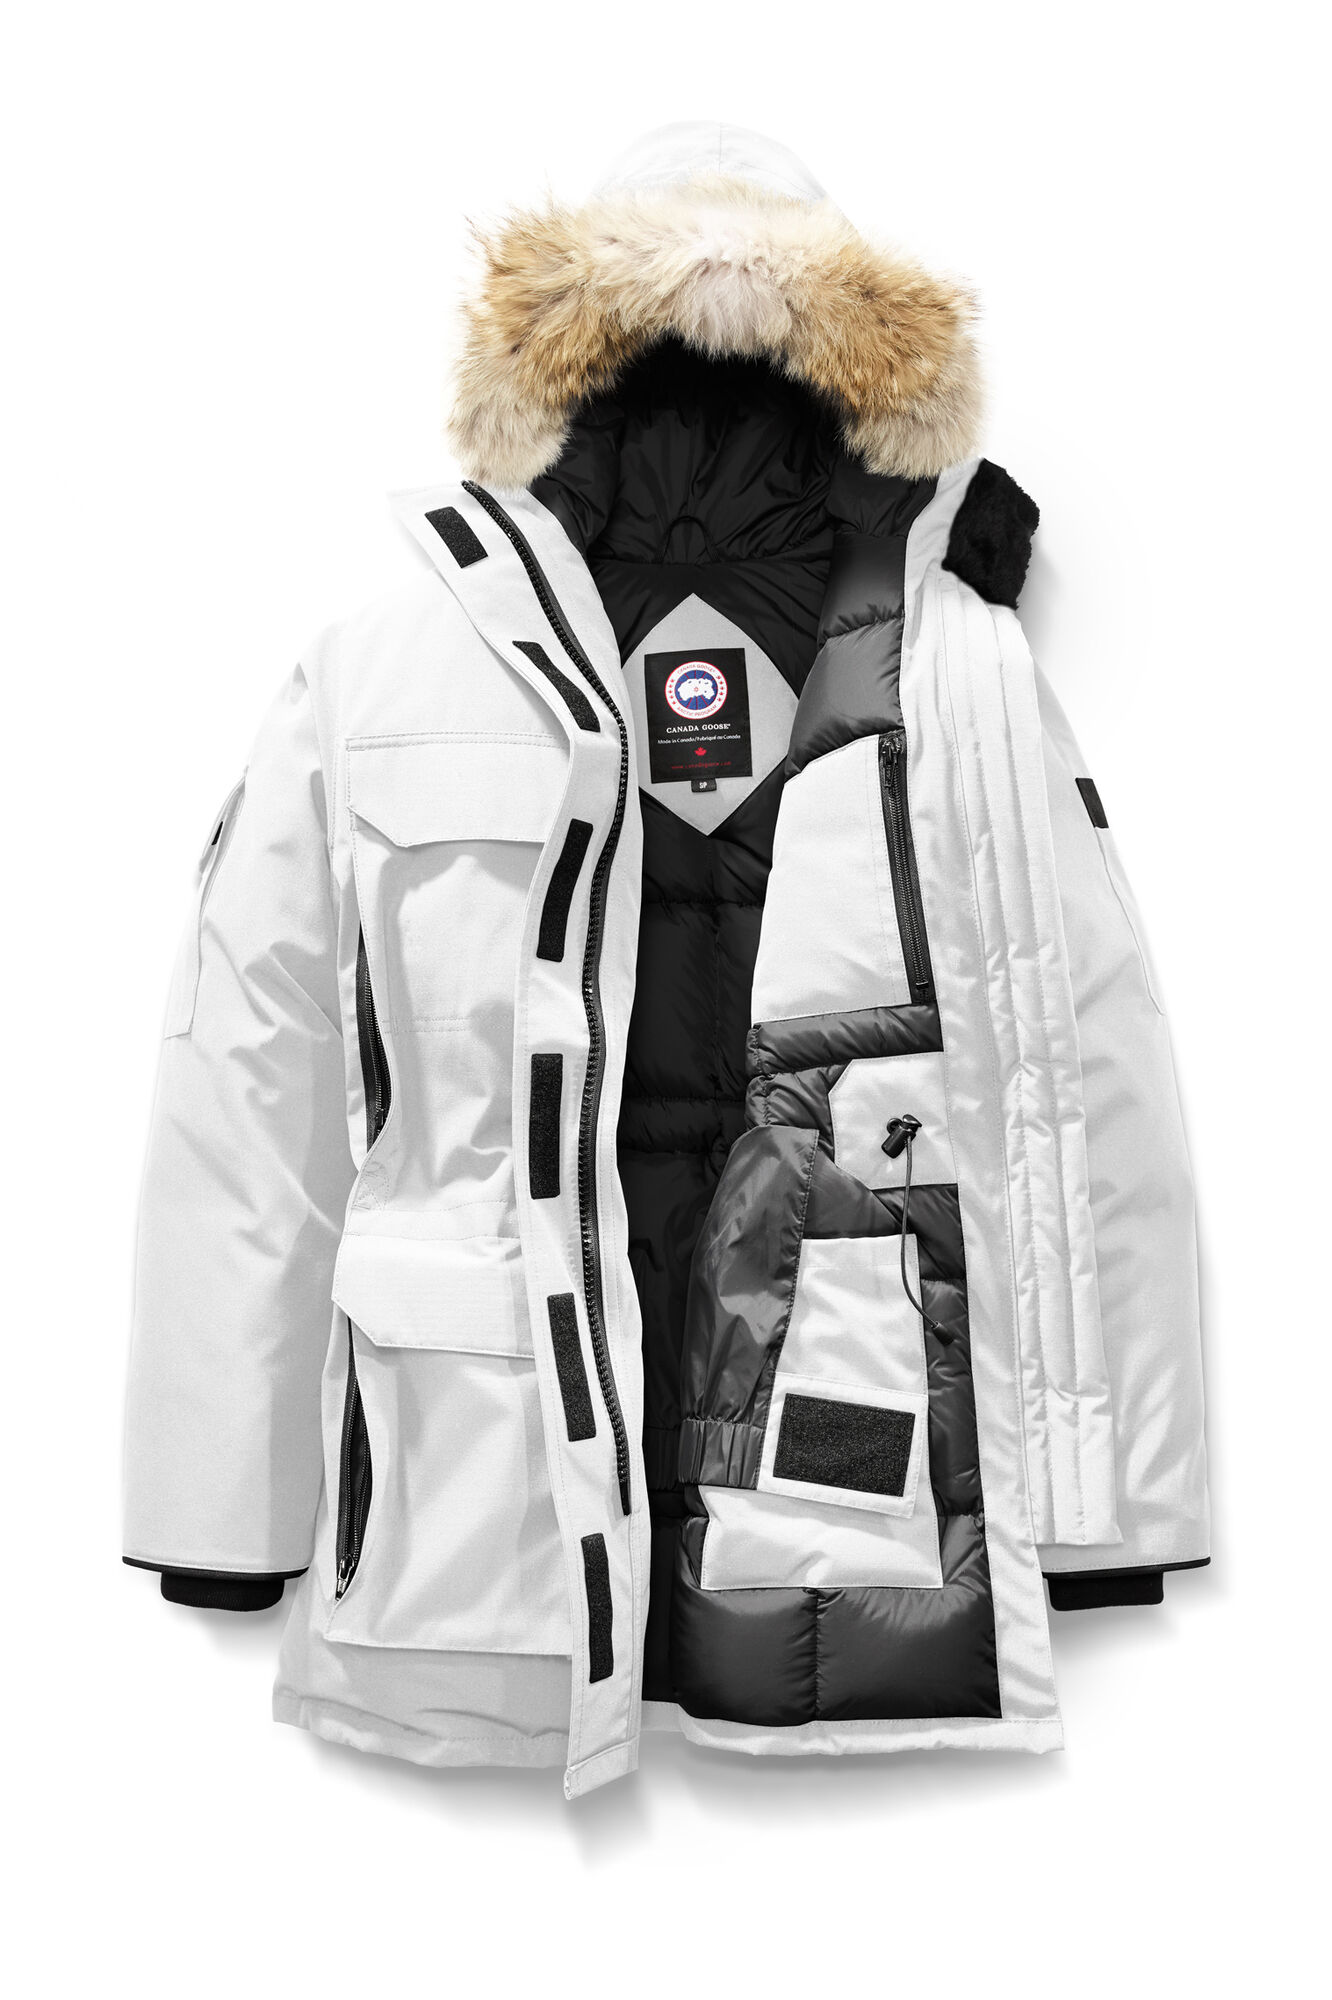 Canada Goose mens replica store - Women's Arctic Program Expedition Parka | Canada Goose?